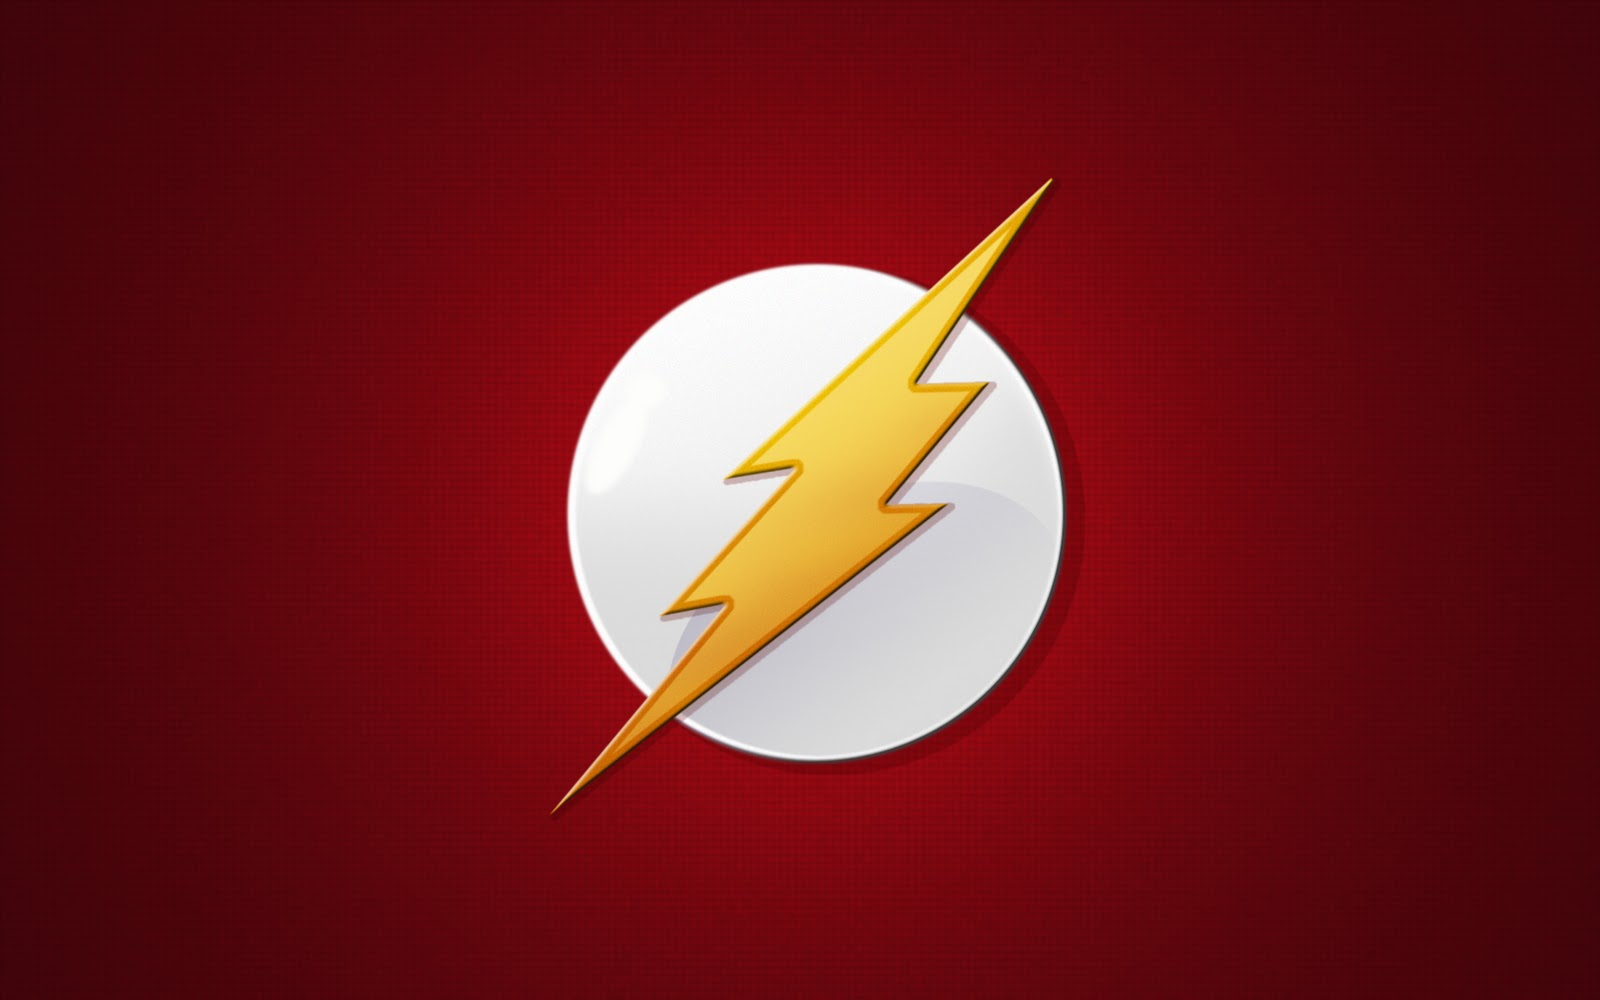 http://2.bp.blogspot.com/-i3T47sFV6LU/TxUtSS4MkBI/AAAAAAAABpA/zvRV_zqn2hY/s1600/dc_comics_the_flash_logos_comic_hero_desktop_1920x1200_wallpaper-177503.jpeg